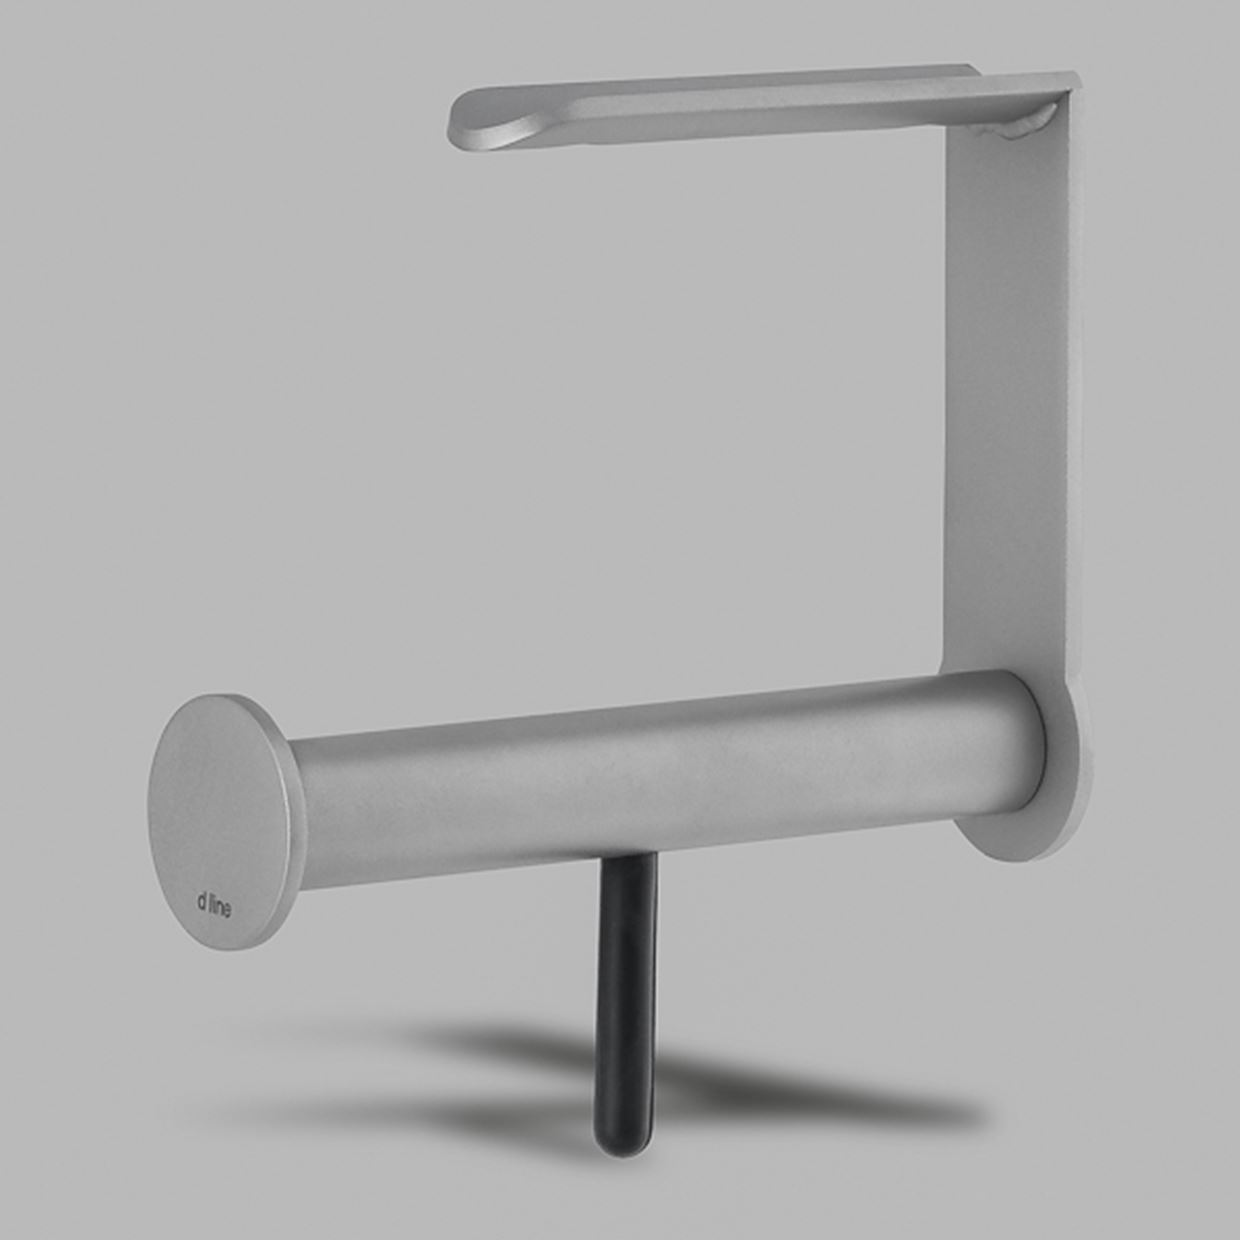 14.7556.02.006 Toilet Roll Holder F Grab Bar Foldable With Pin 2